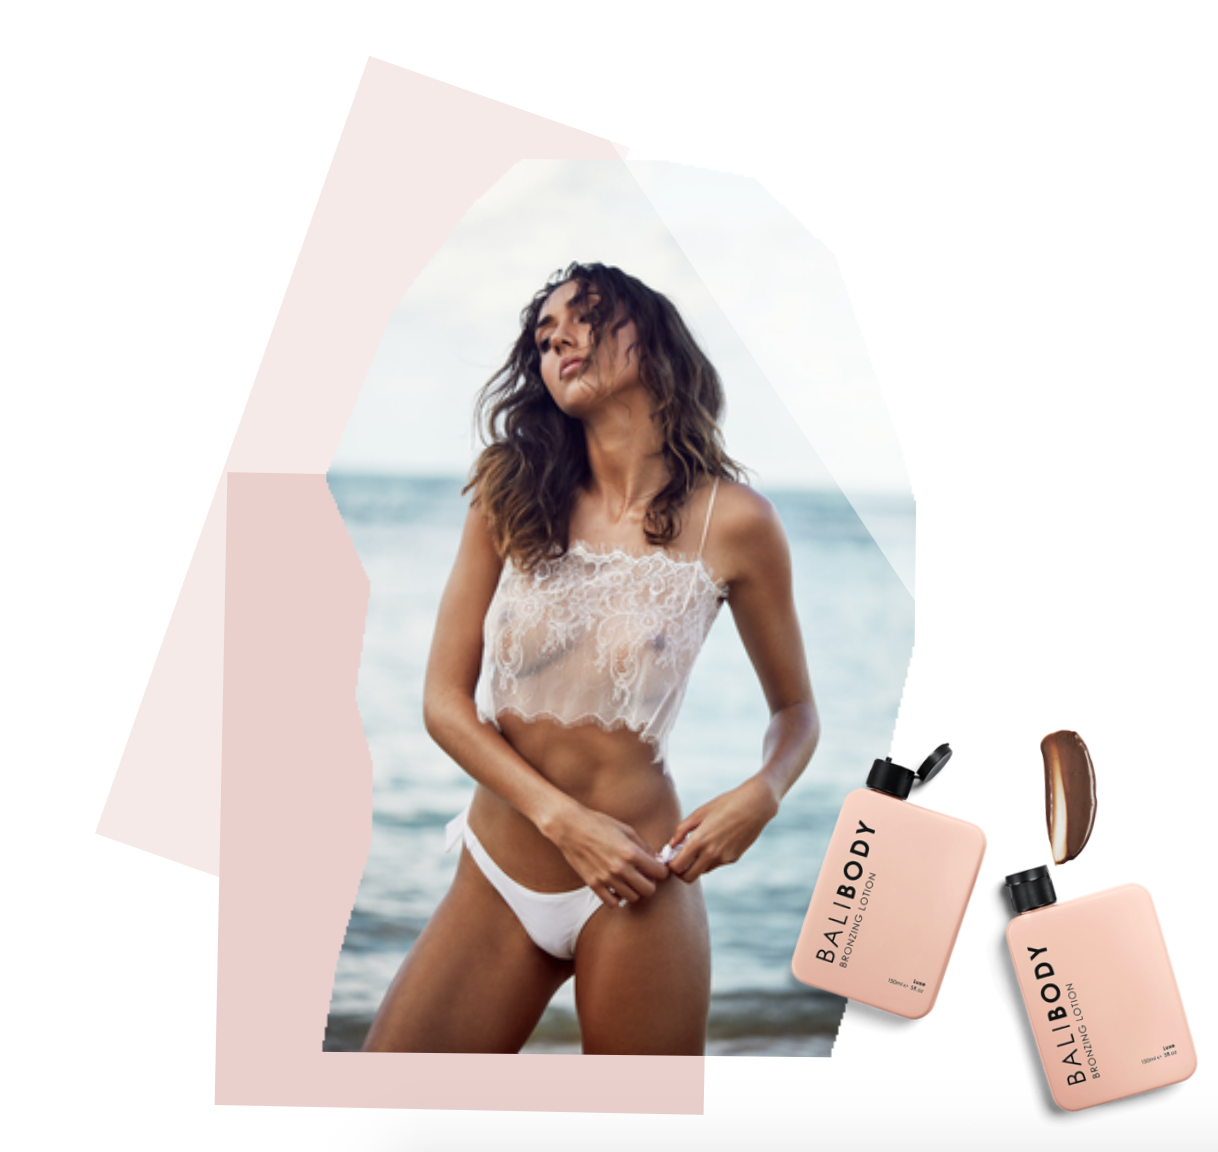 I AM ZAZIE  Aurora Chantilly Sheer Lace Top  from our Après-Beachwear collection X BALI BODY  Bronzing Lotion .